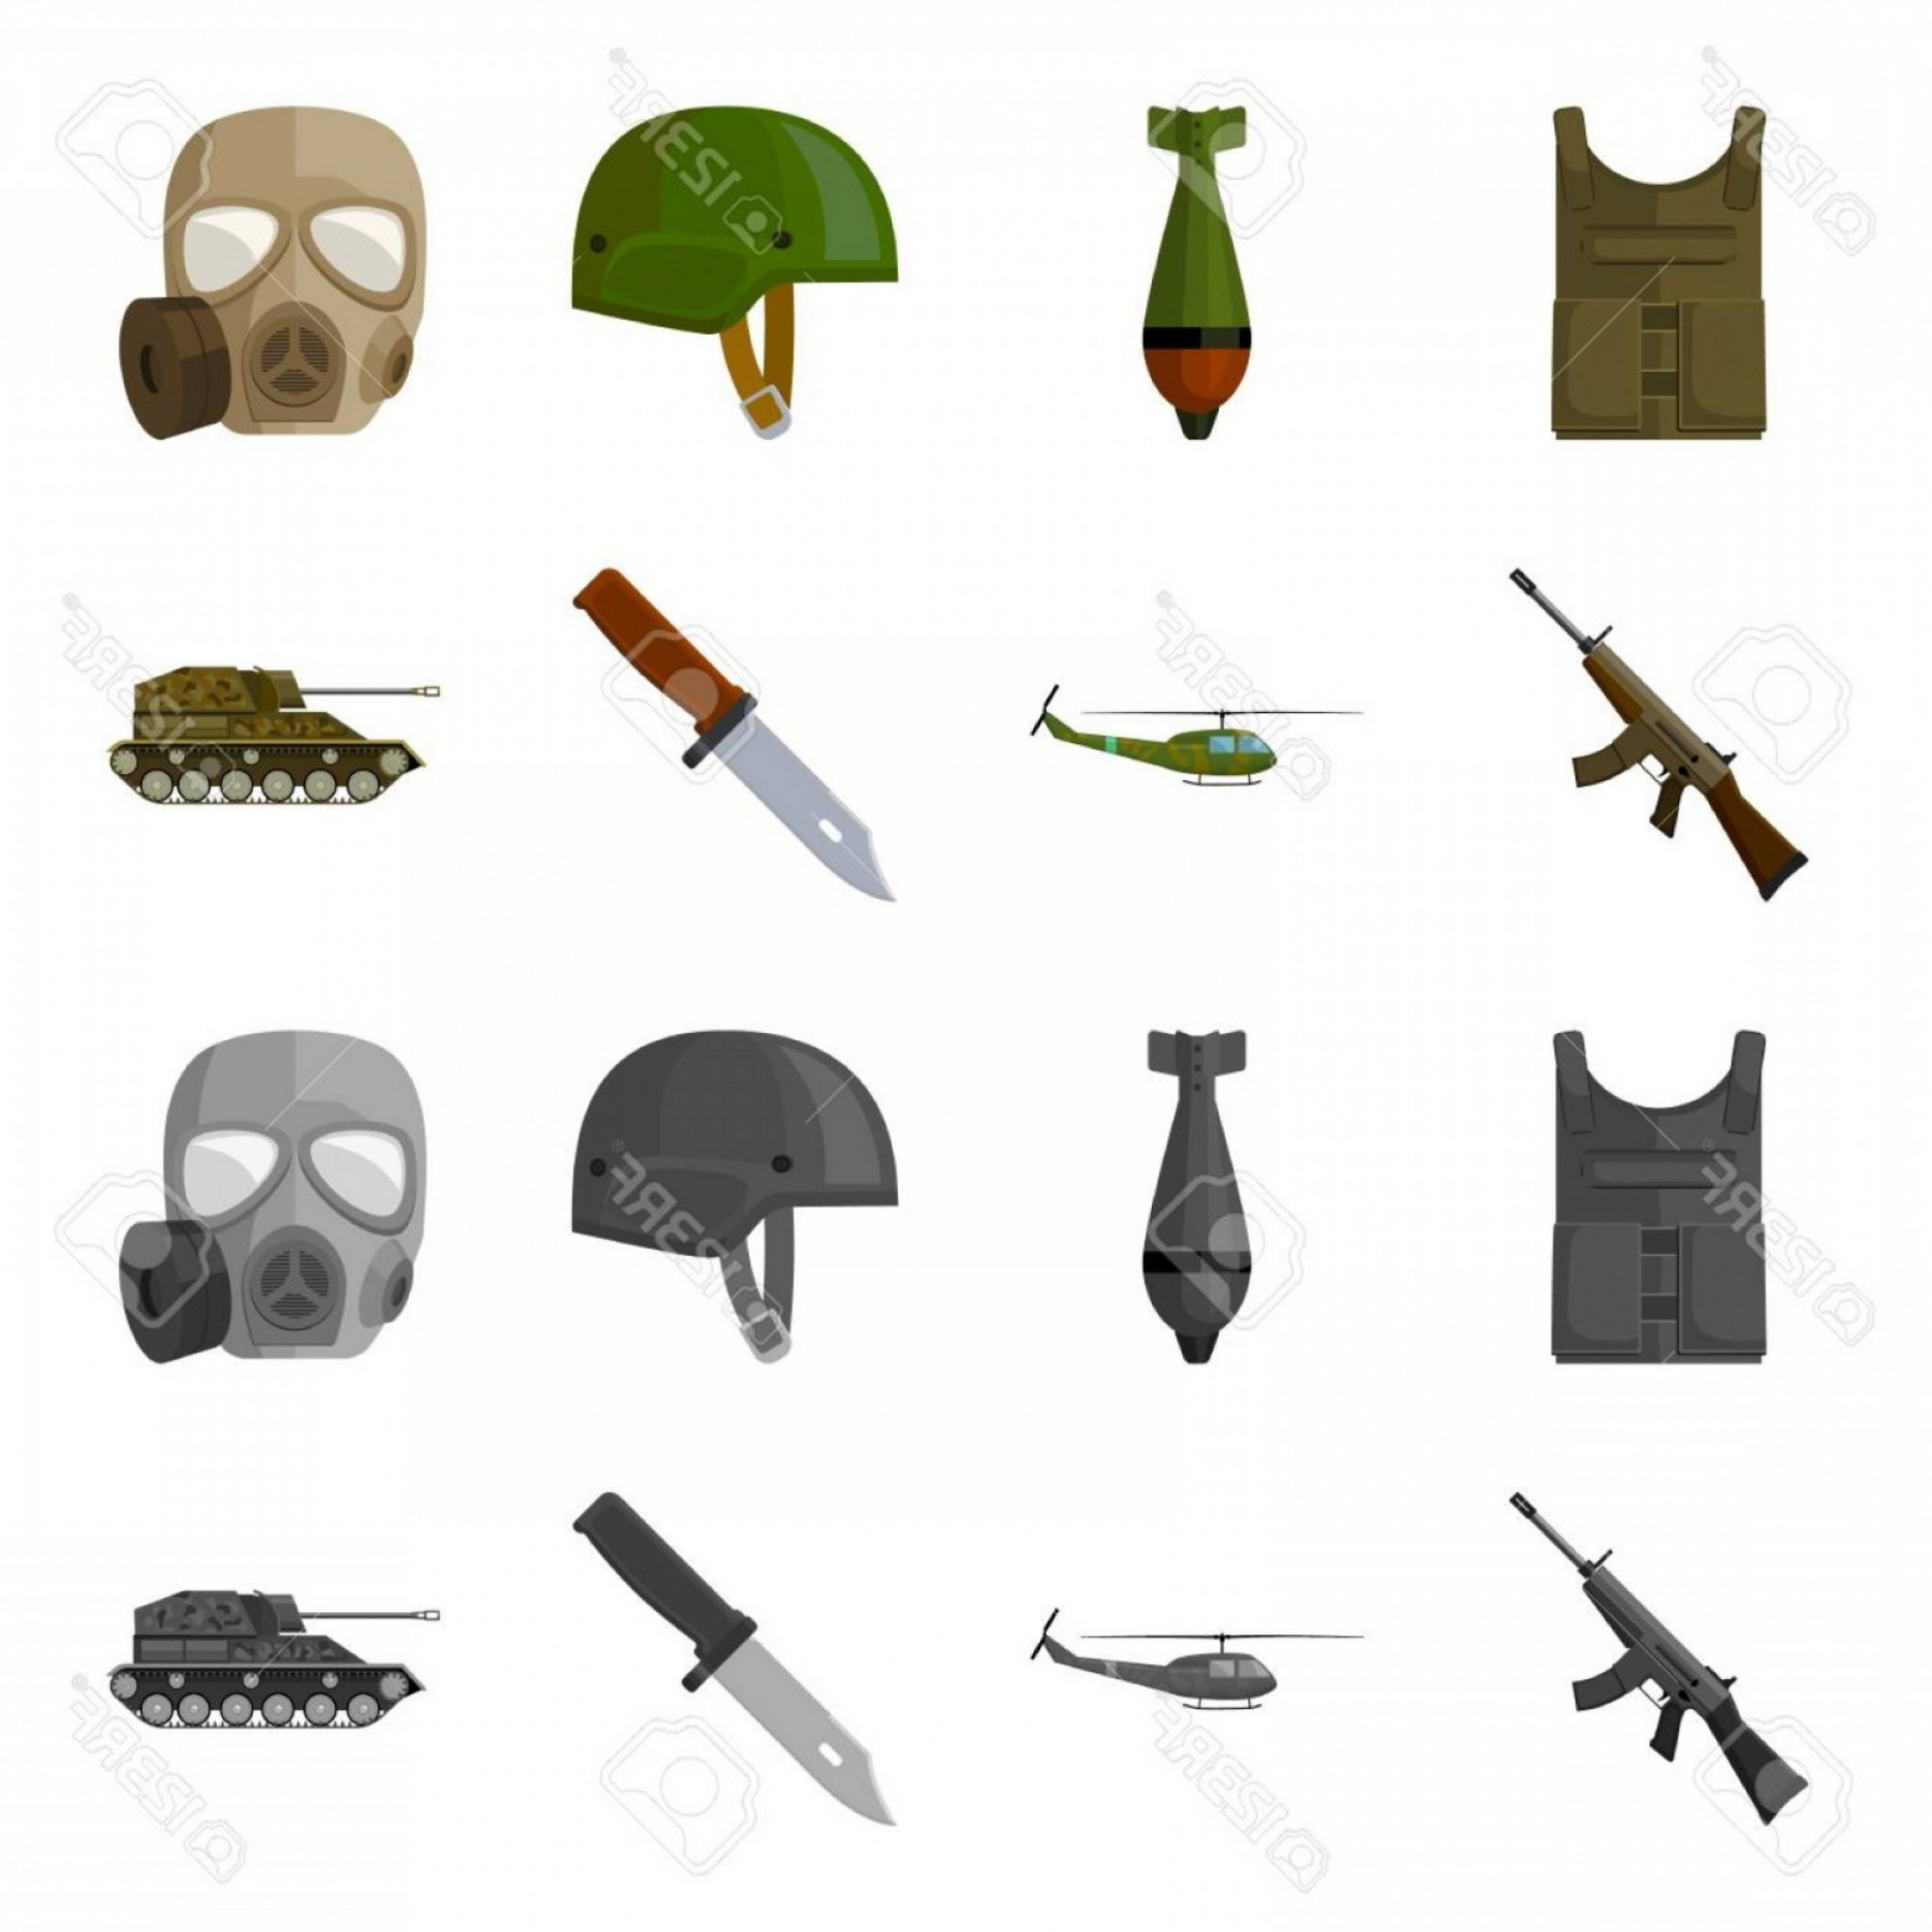 Blackhawk Vector MedVac: Photostock Vector Assault Rifle M Helicopter Tank Combat Knife Military And Army Set Collection Icons In Cartoon Mon